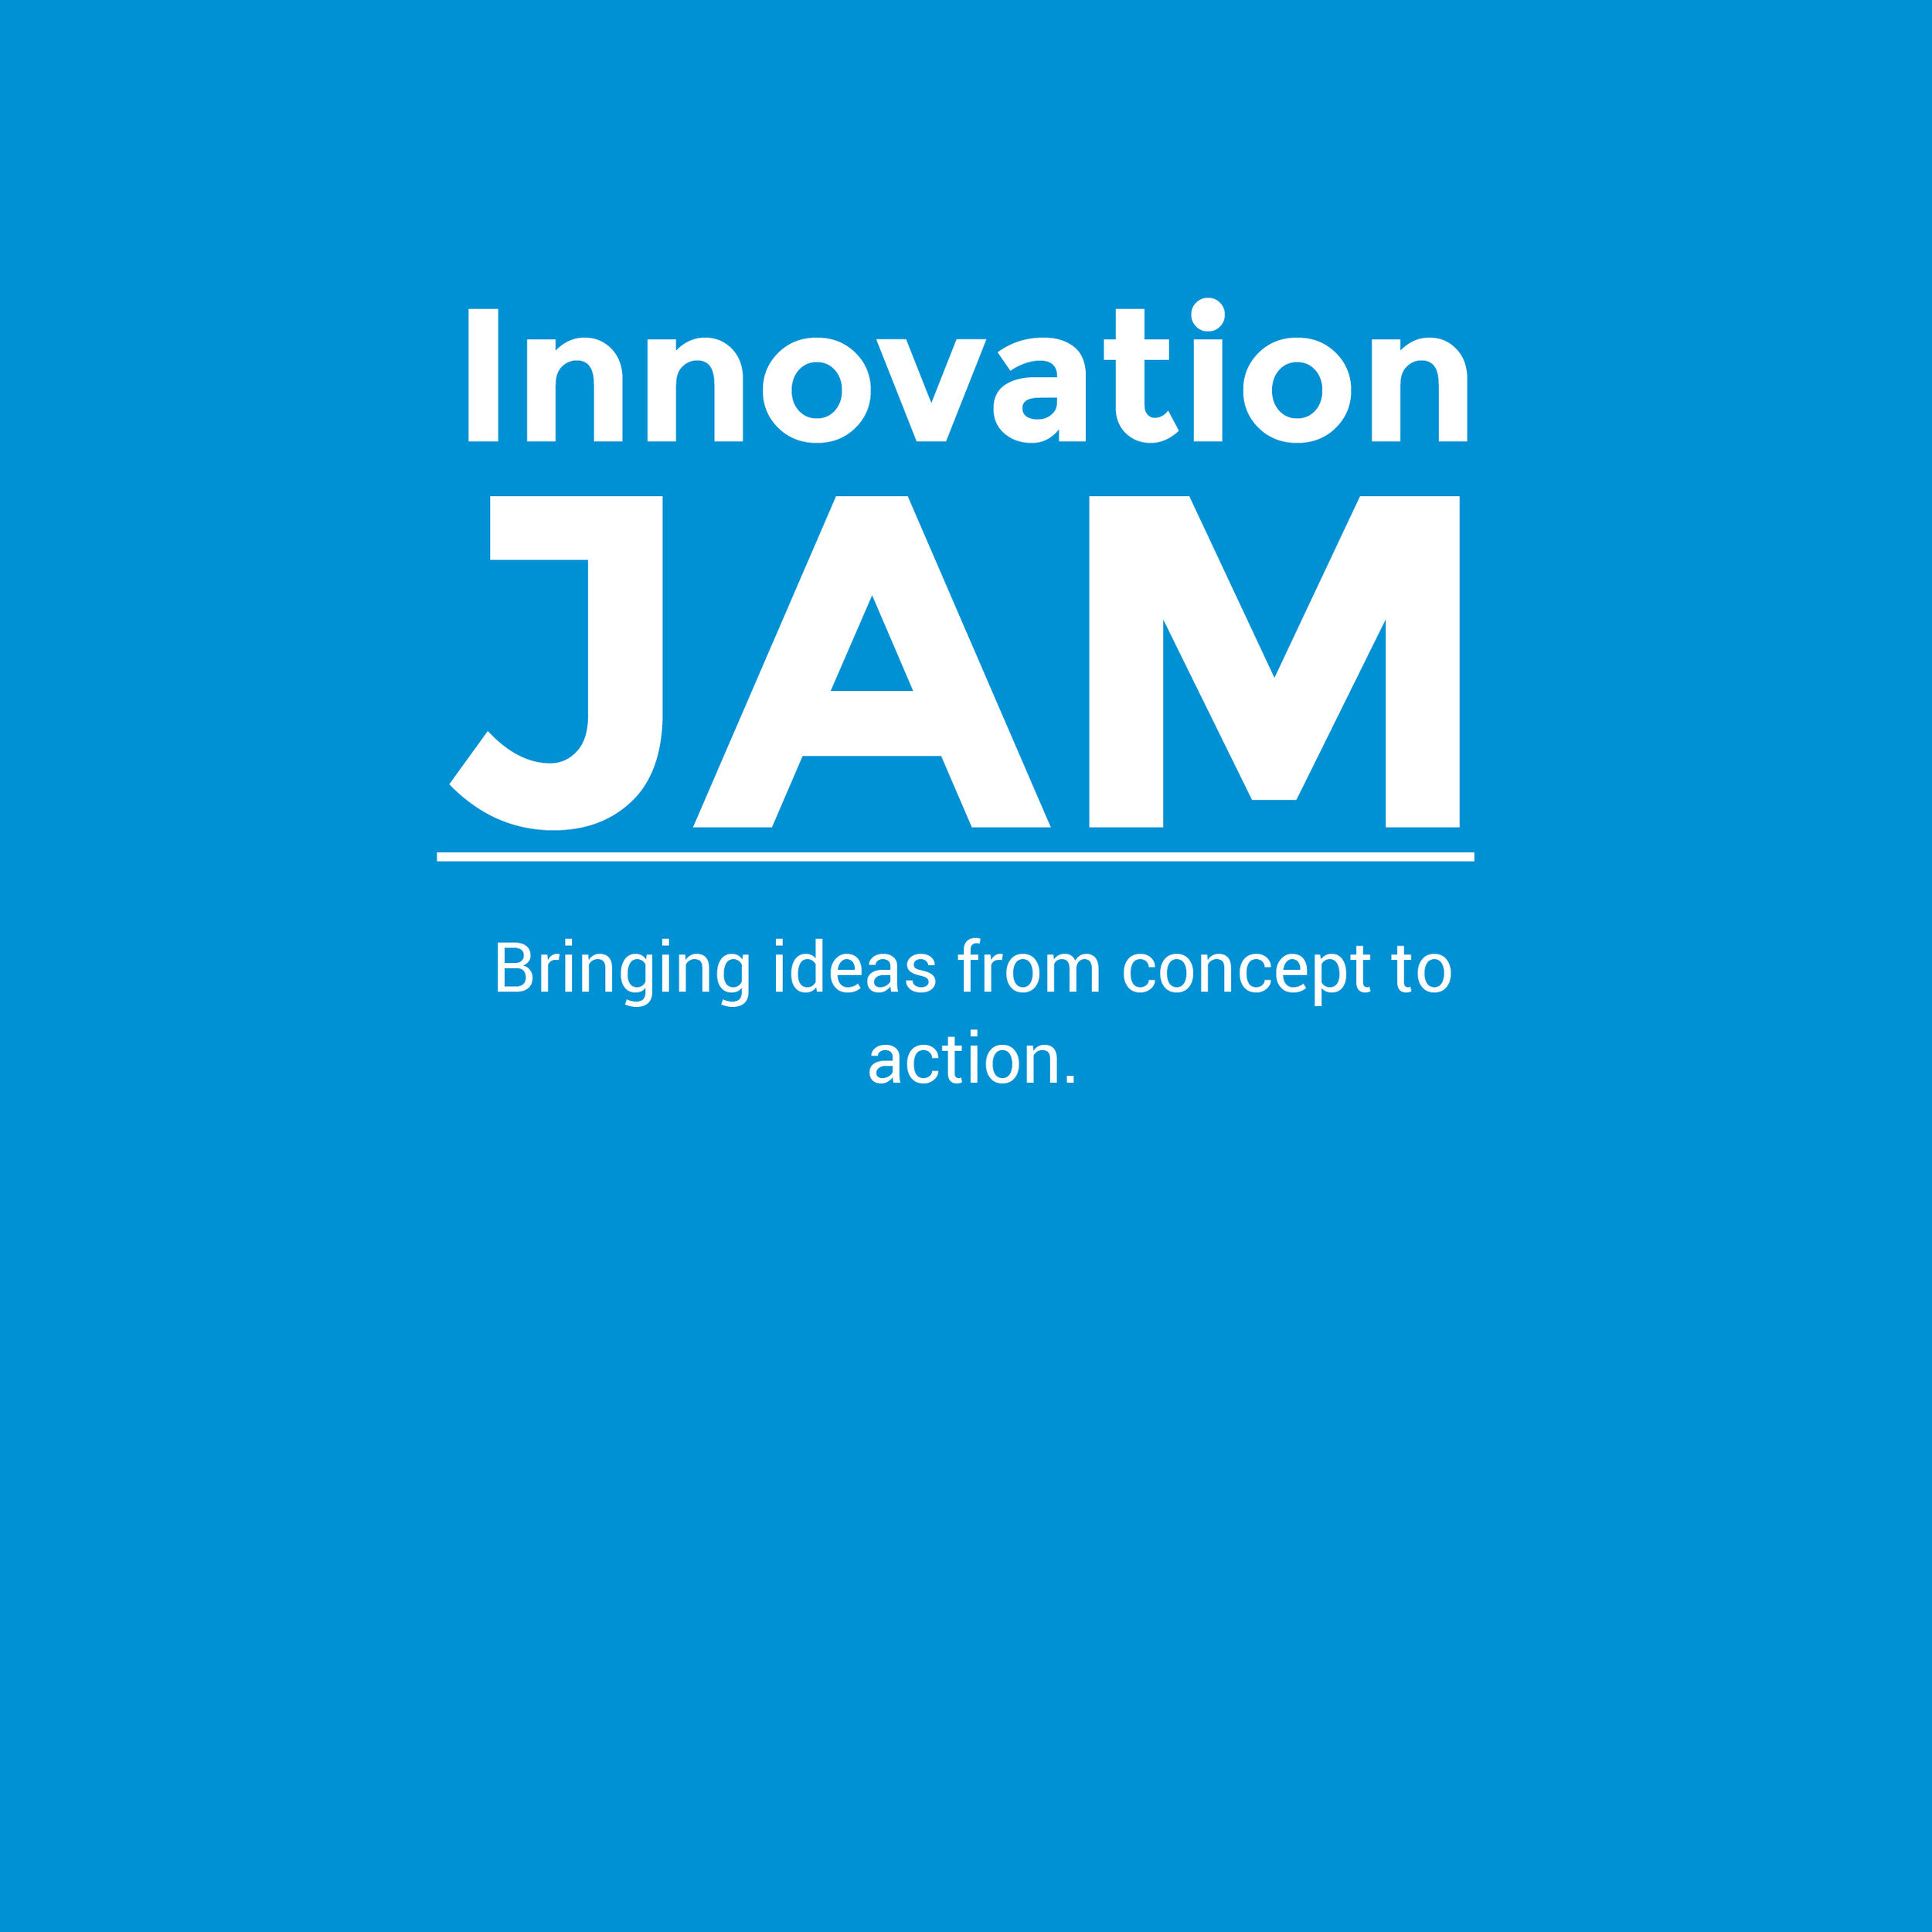 Getting started with innovation may sound intimidating but we think you can do it! In this online session, we're going to give you the tools to be innovative in any area of your life. By breaking down the fundamentals of innovation and examining examples of famous innovators, the innovation jam will reshape the way you think about problems and inspire you to create solutions that work!  Start now.